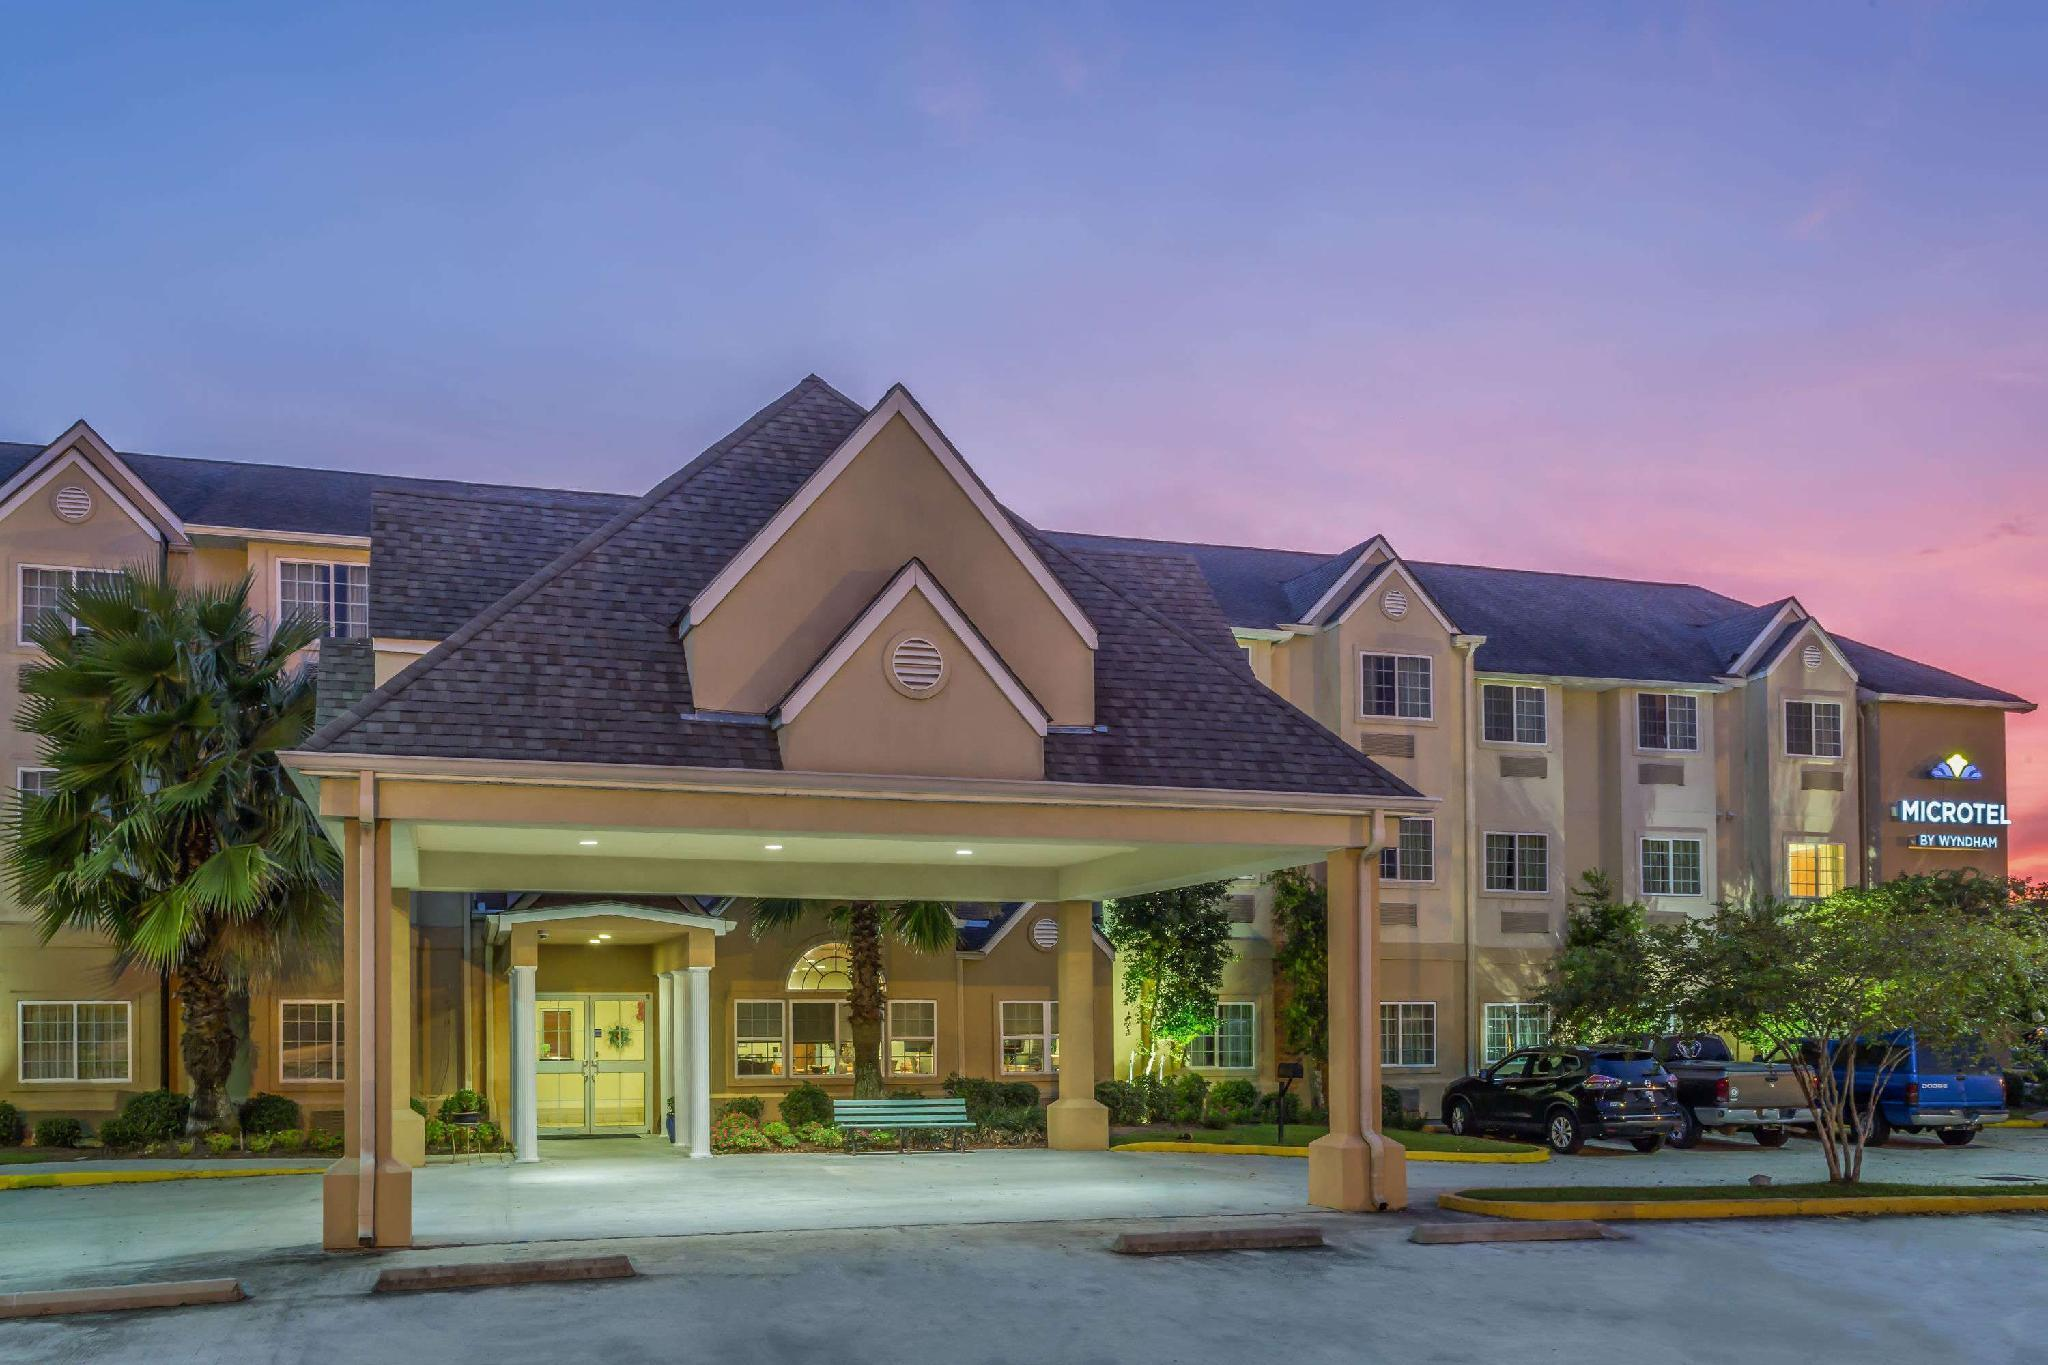 Microtel Inn And Suites By Wyndham Houma